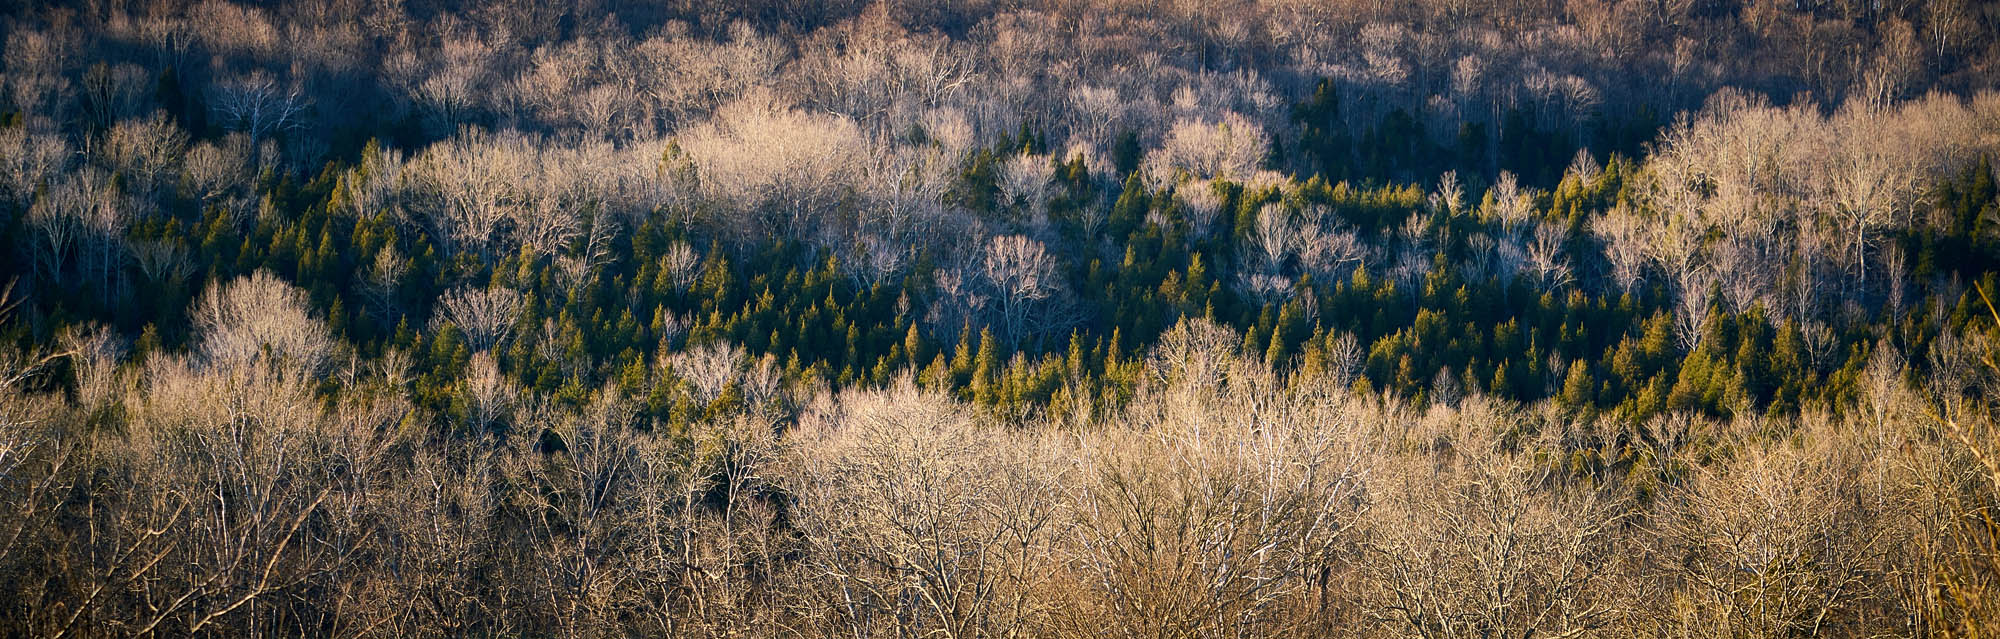 Landscape of tree in late autumn early winder - Nature Photography